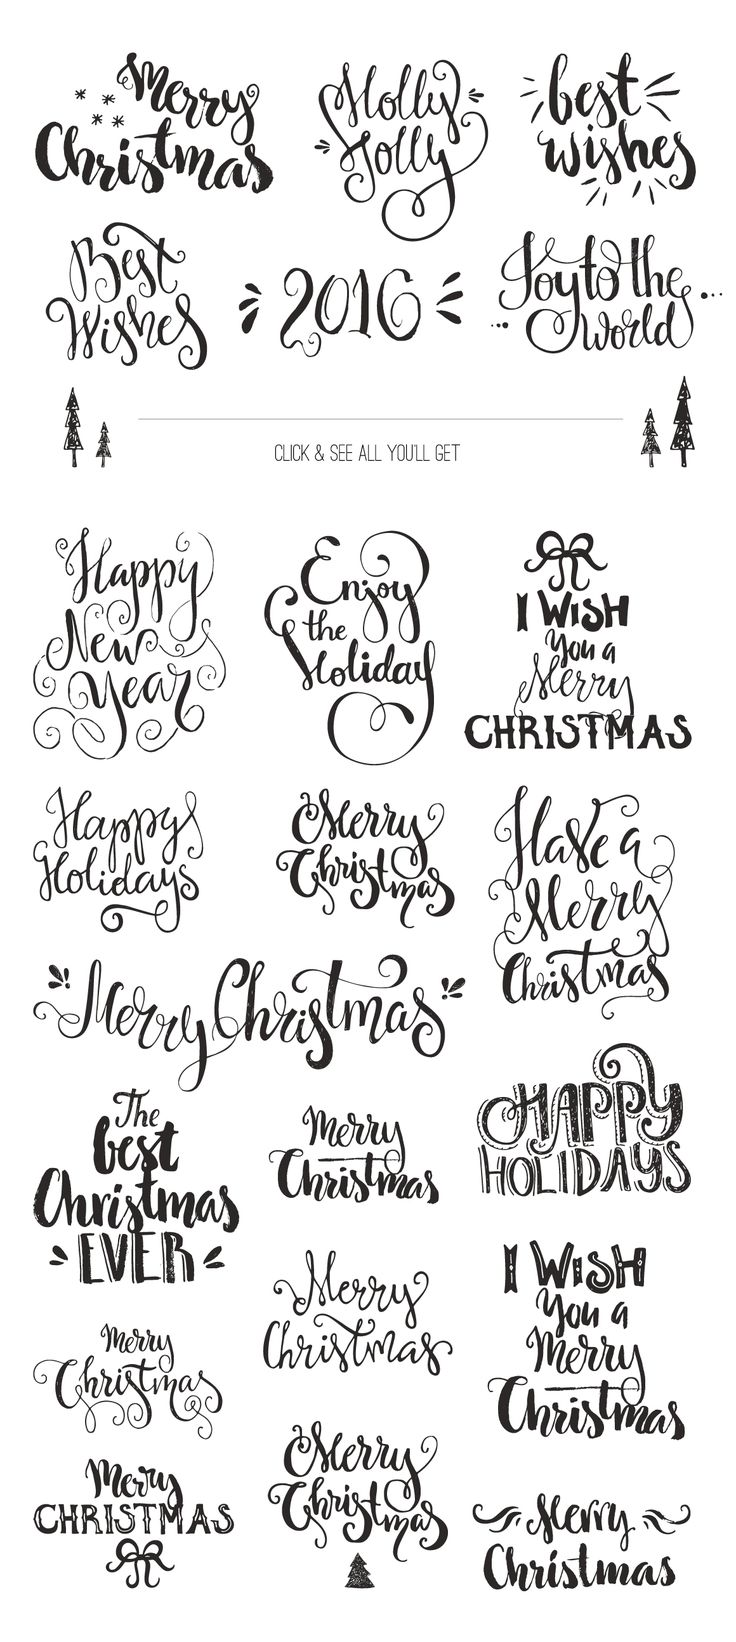 Handdrawn Christmas Photo Overlays by Favete Art on Creative Market